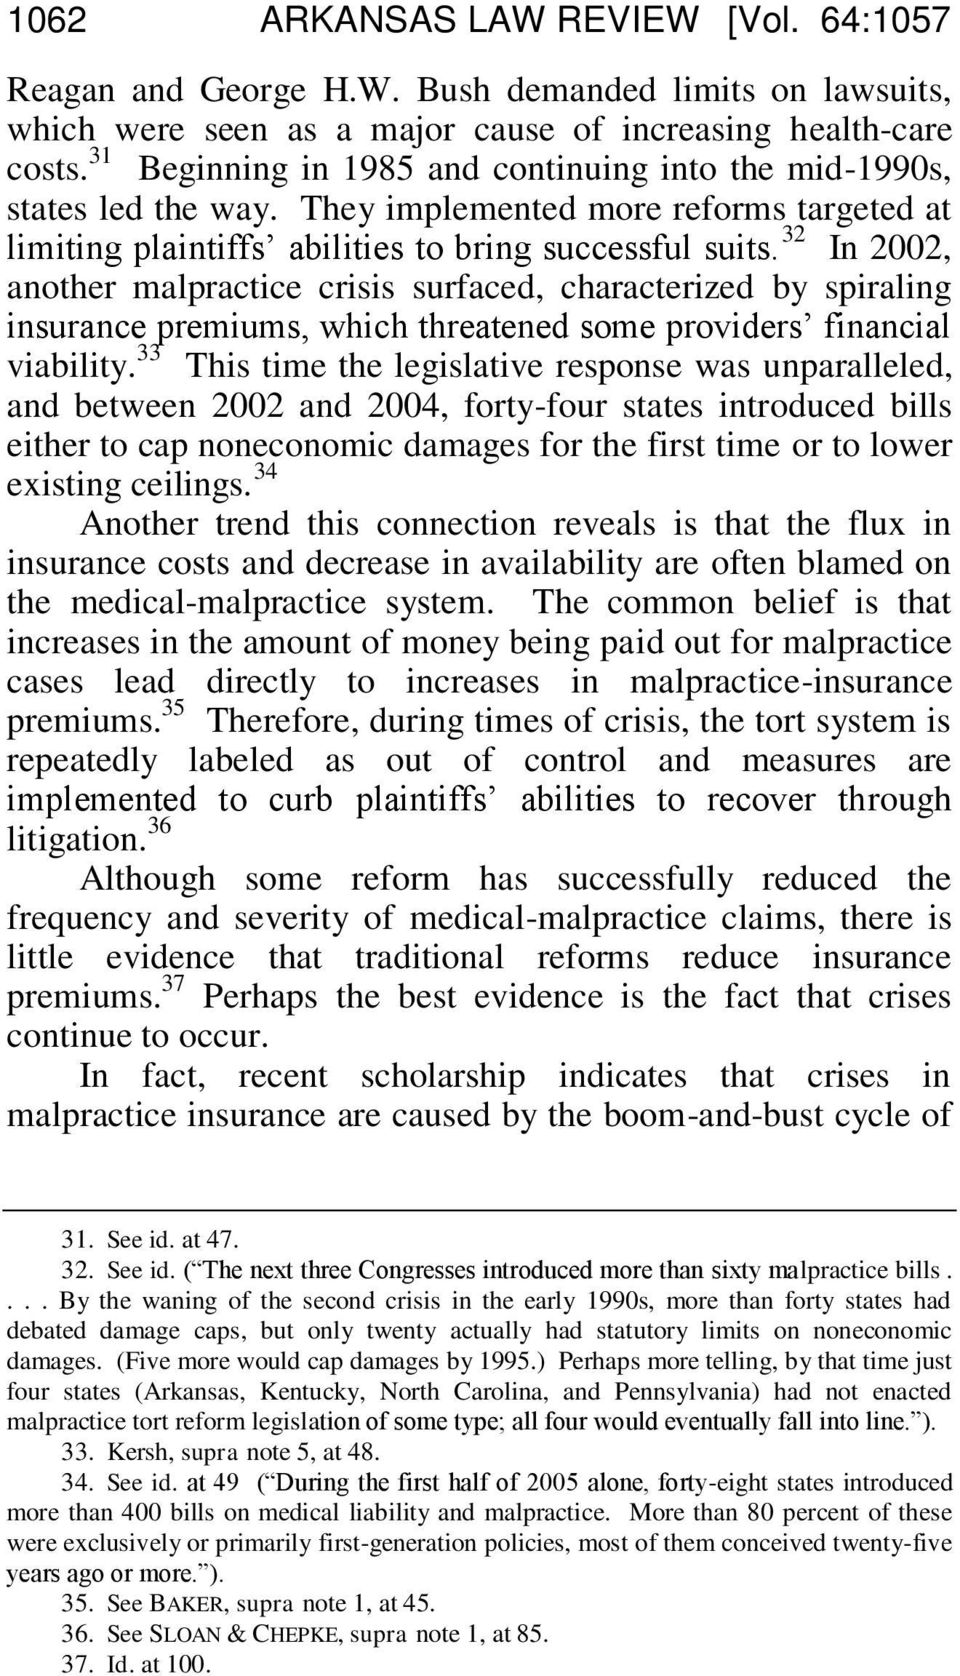 32 In 2002, another malpractice crisis surfaced, characterized by spiraling insurance premiums, which threatened some providers financial viability.